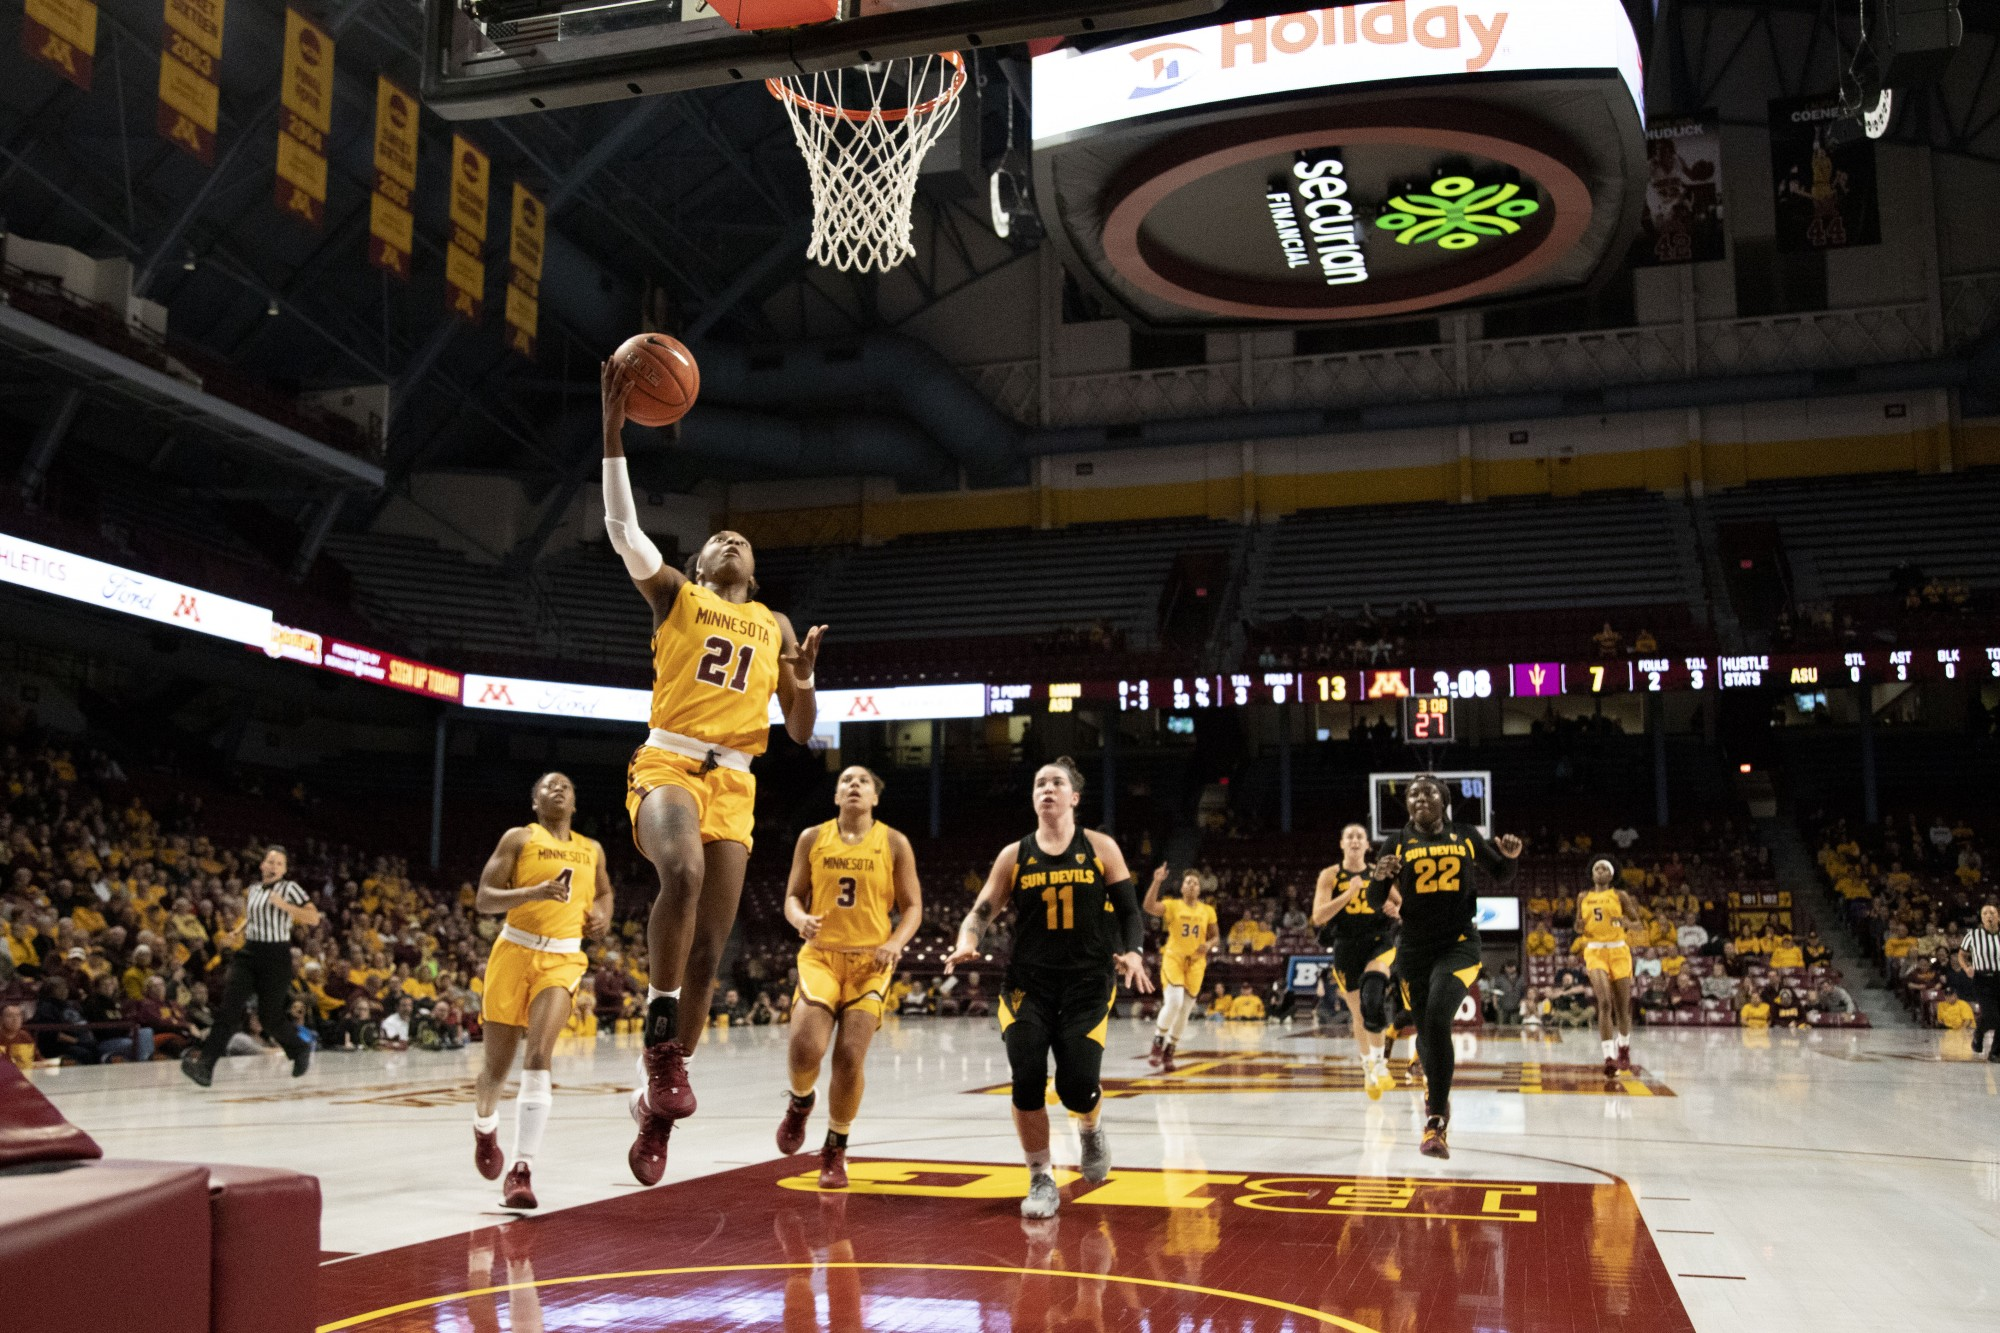 Guard Jasmin Brunson lays the ball up during the game against Arizona State at Williams Arena on Sunday, Nov. 17. The Gophers defeated the Sun Devils 80-66.